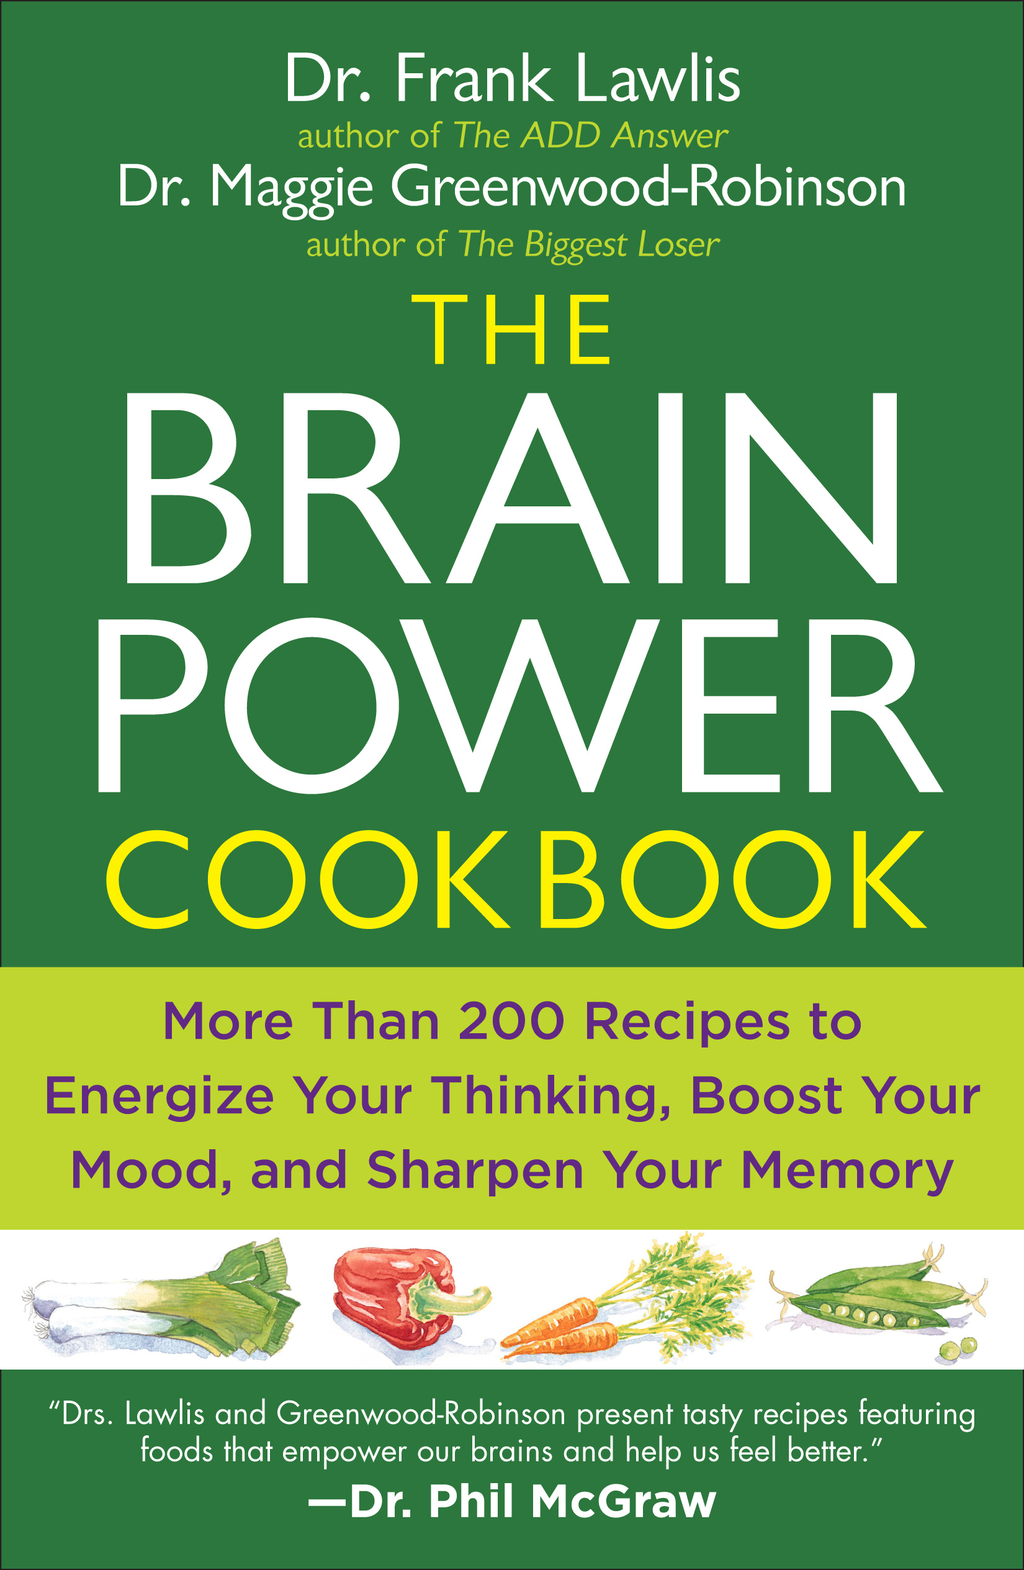 The Brain Power Cookbook By: Dr. Frank Lawlis,Maggie Greenwood-Robinson